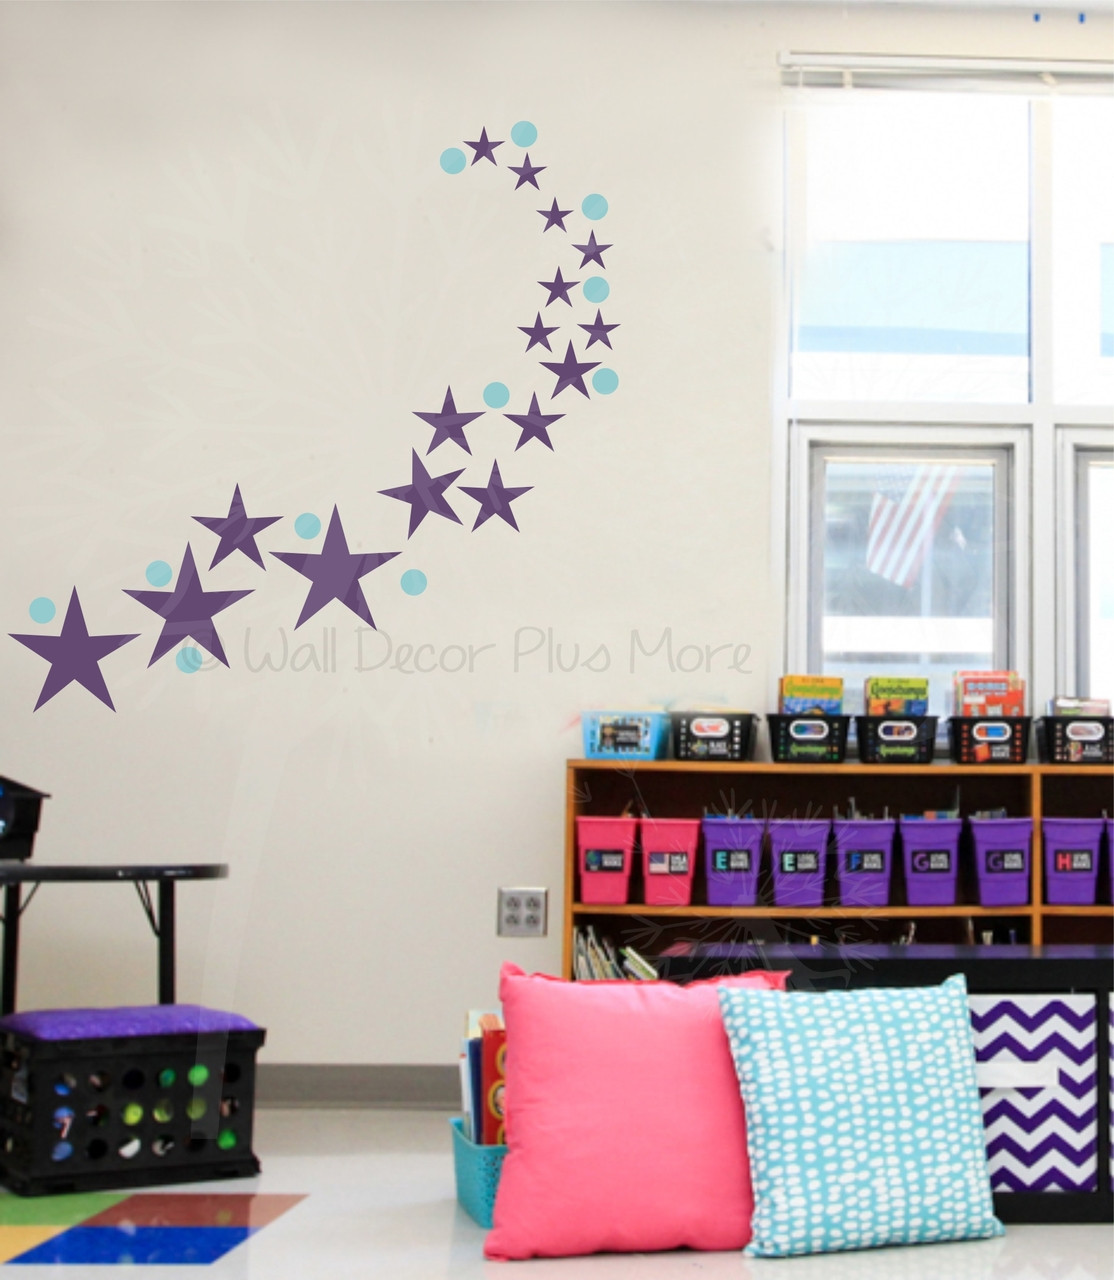 3Inch Dots For ClassRoom Decoration Shown With Variety Stars   Kids Fun  Easy To Apply